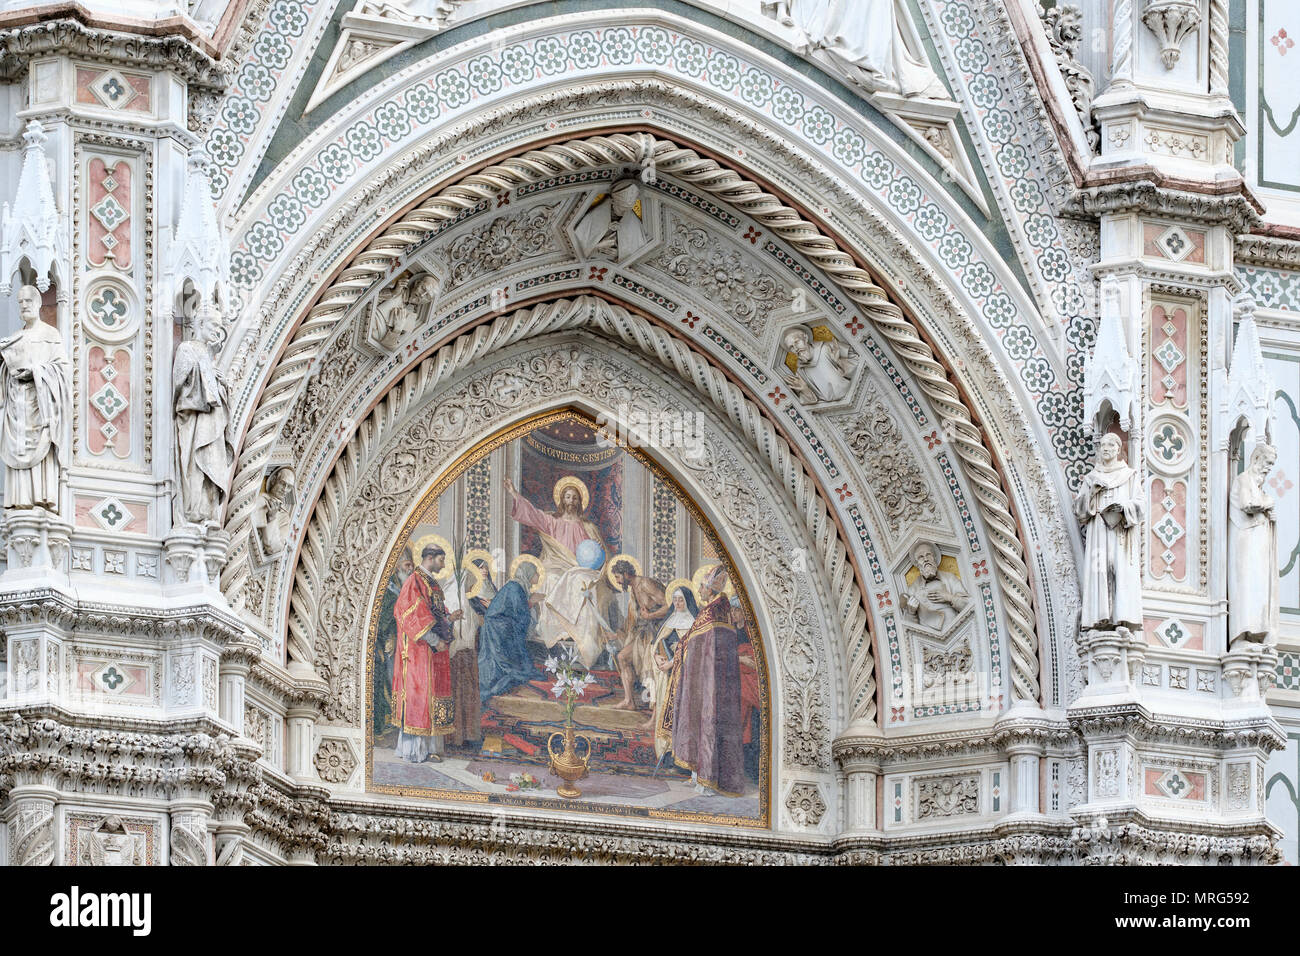 Mosaic of Jesus Christ above main entrance, Cattedrale di Santa Maria del Fiore, Cathedral of Saint Mary of the Flower, Florence, Tuscany, Italy, Euro - Stock Image